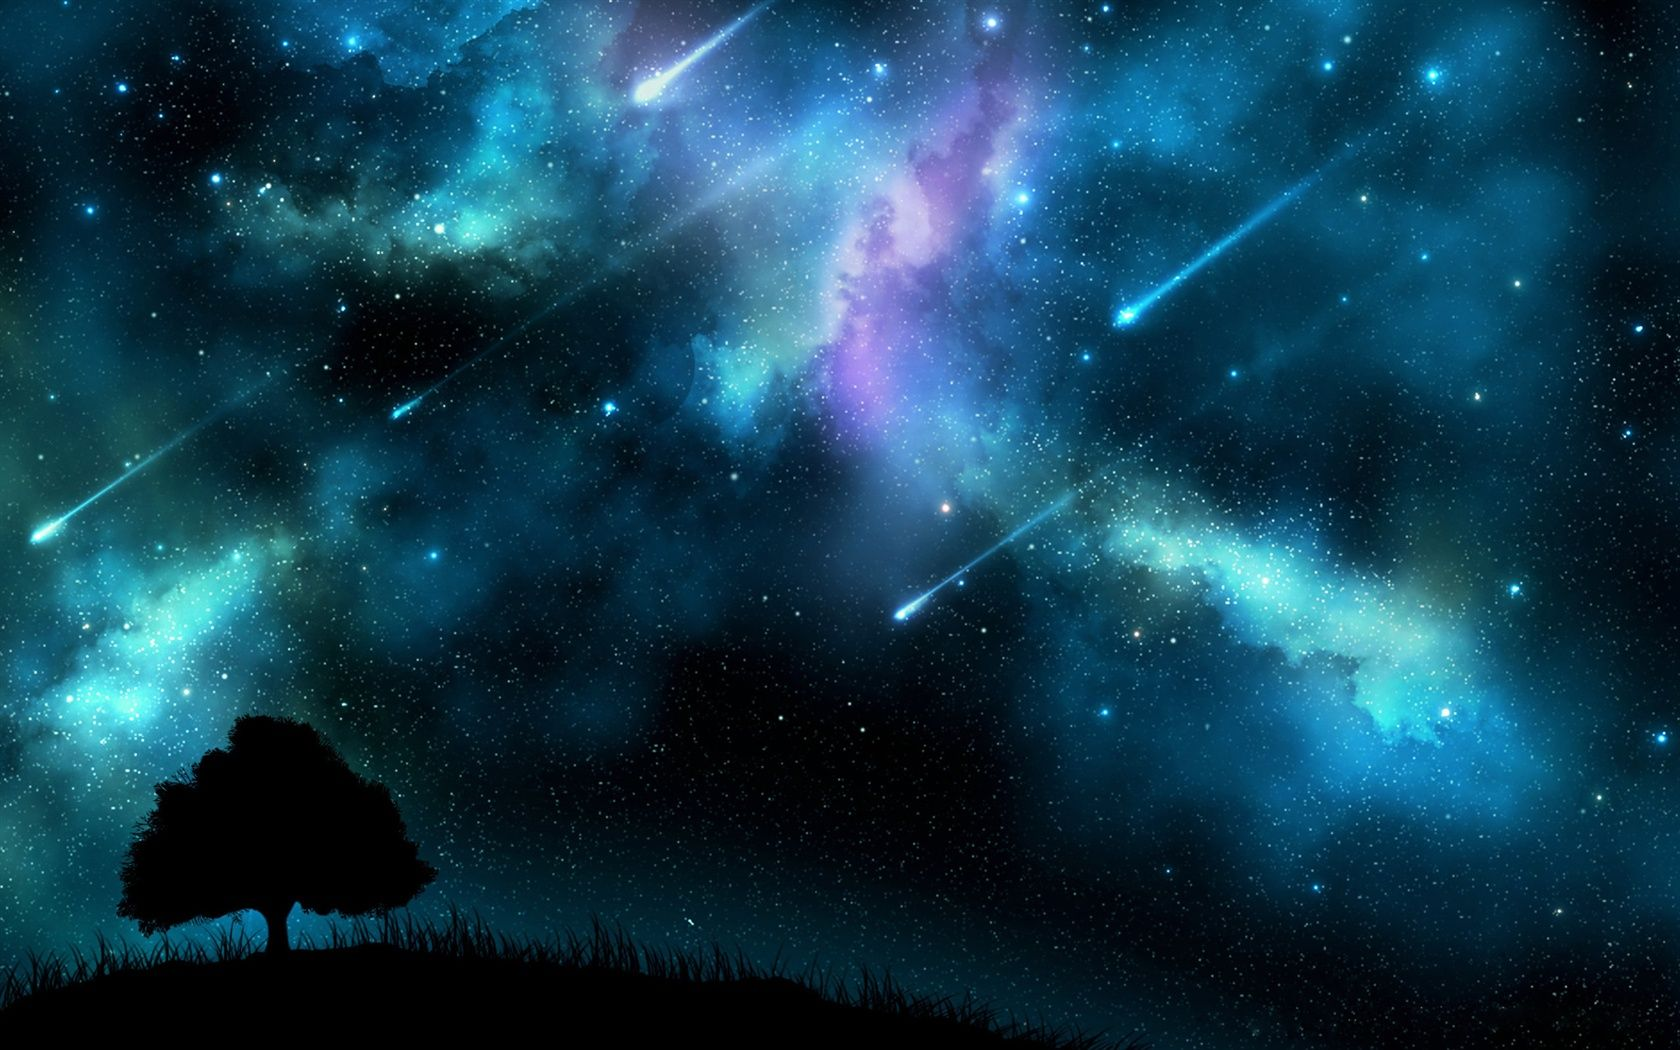 Meteor Shower At Night Blue Sky Trees Silhouette Wallpaper